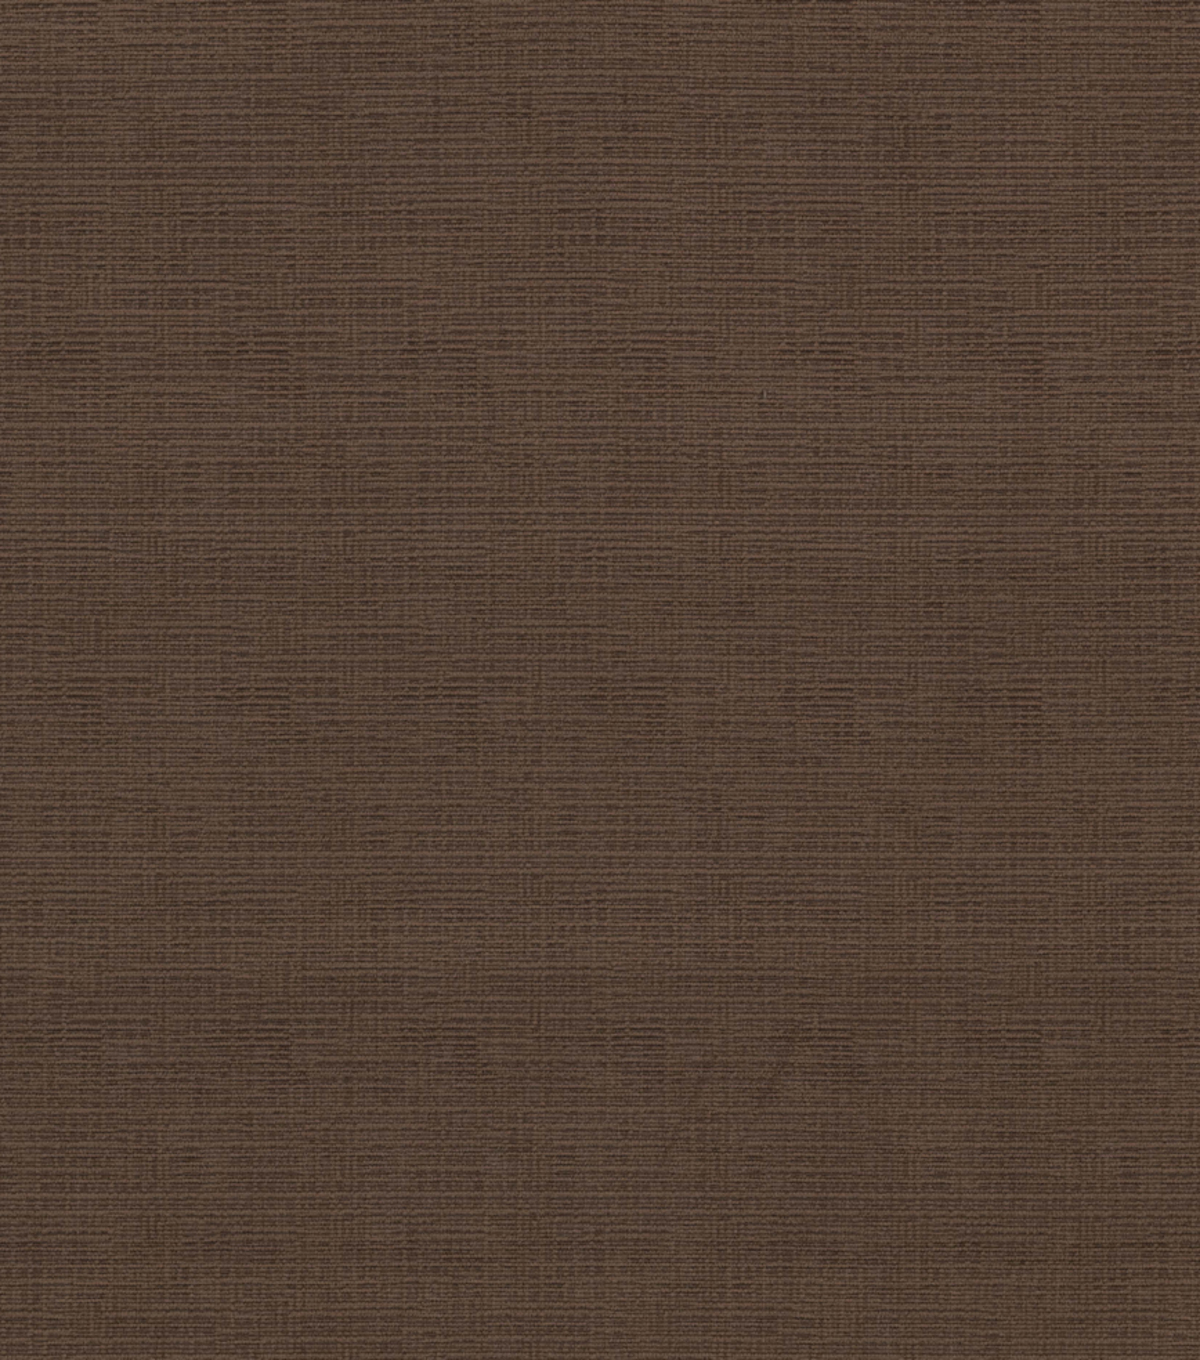 "Home Decor 8""x8"" Fabric Swatch-Aspen Brown"